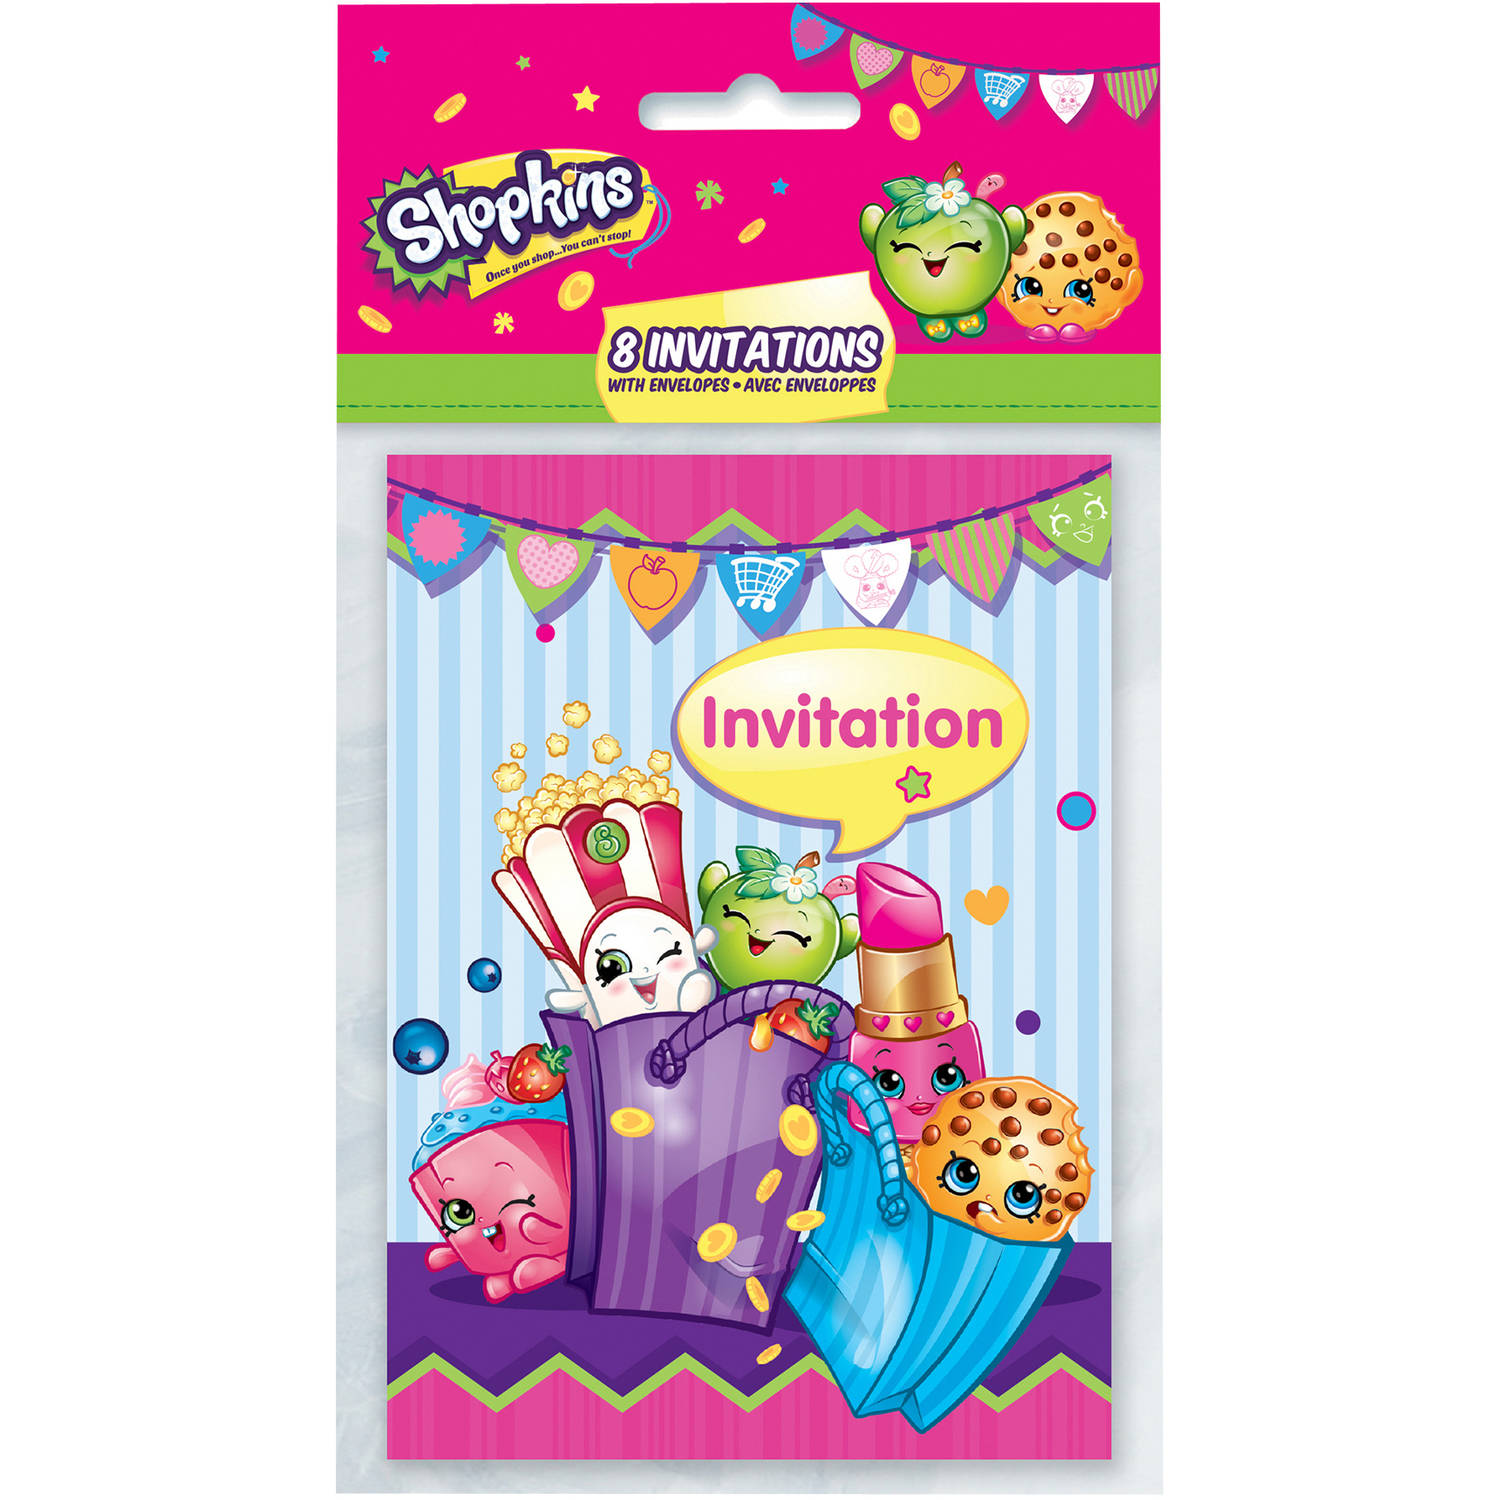 Shopkins Invitations, 8ct